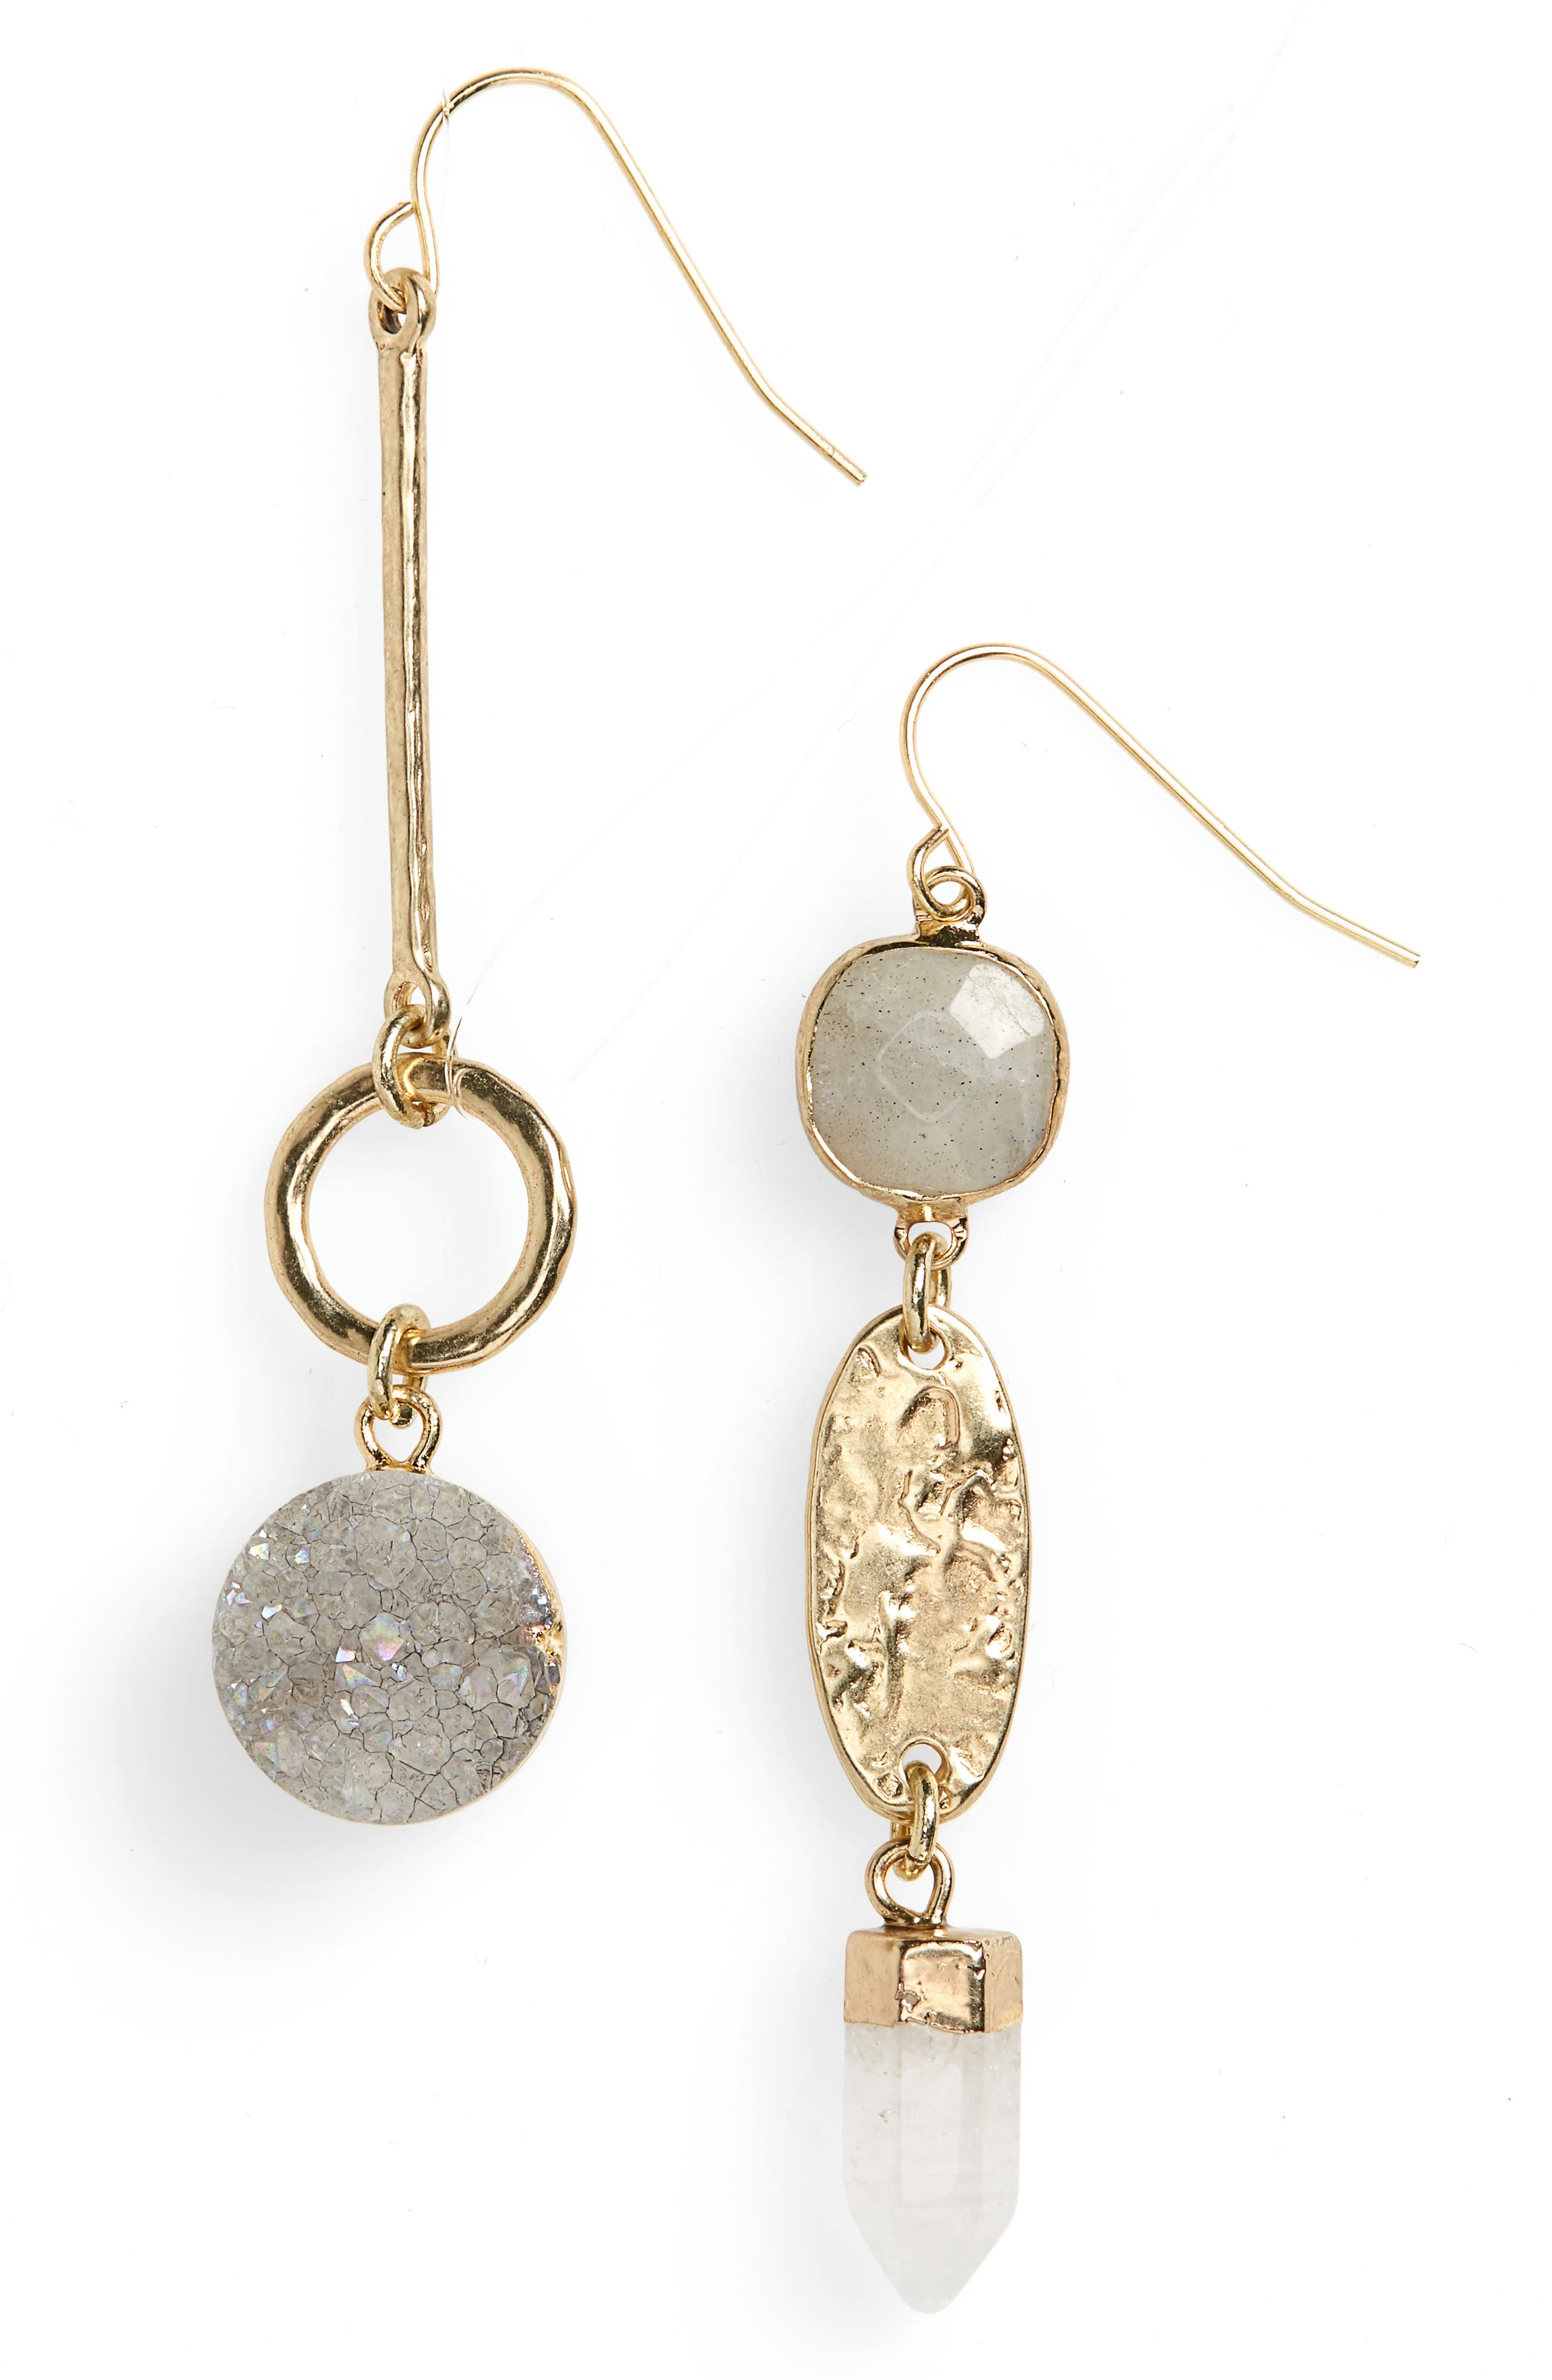 Semiprecious Mismatched Linear Drop Earrings,                         Main,                         color, White- Gold